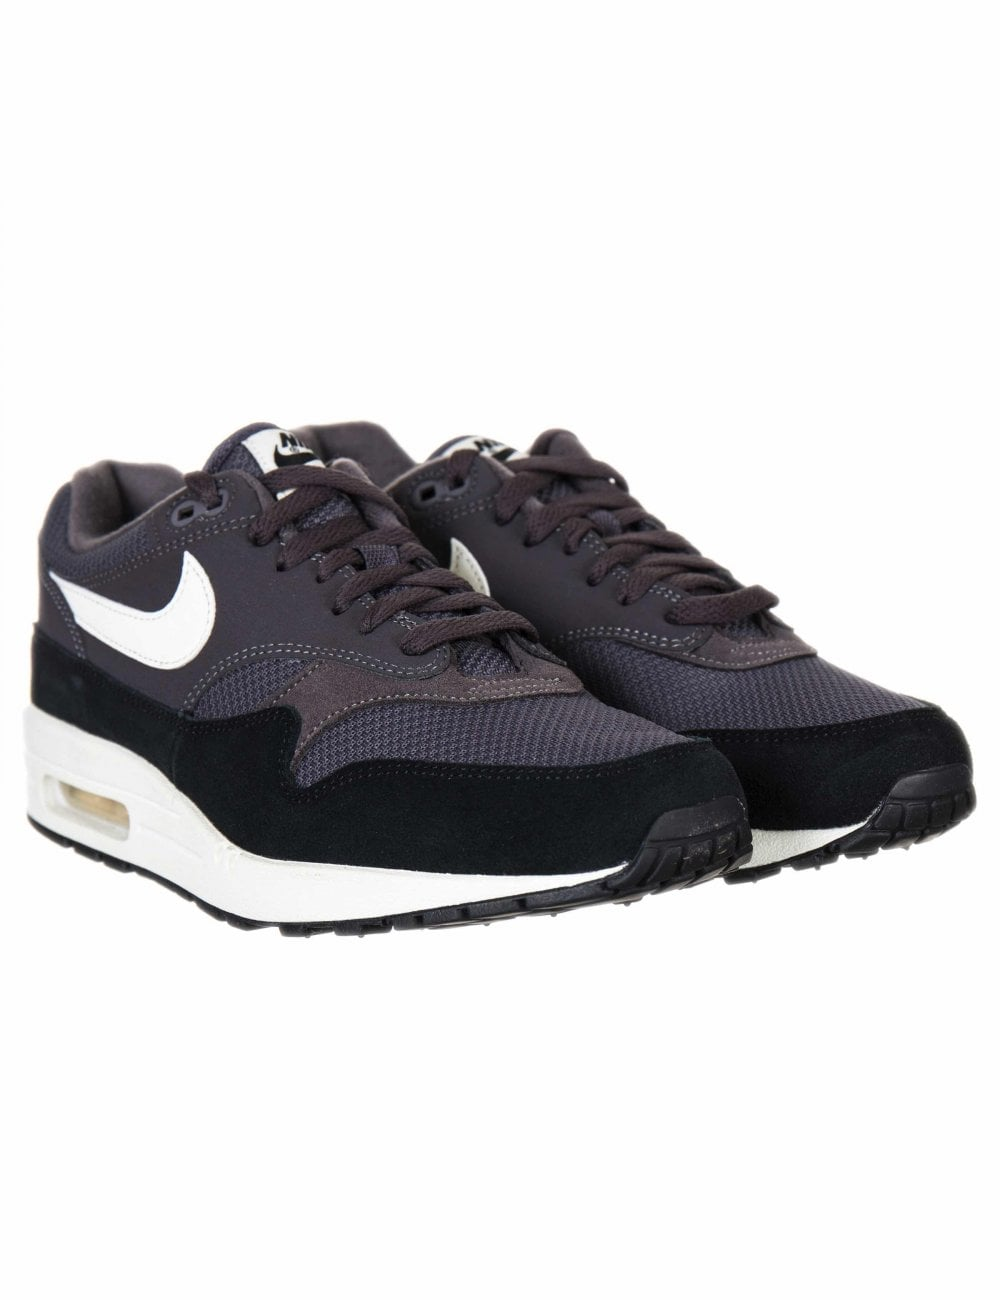 best loved 879c6 30026 Nike Air Max 1 Trainers - Thunder Grey Sail